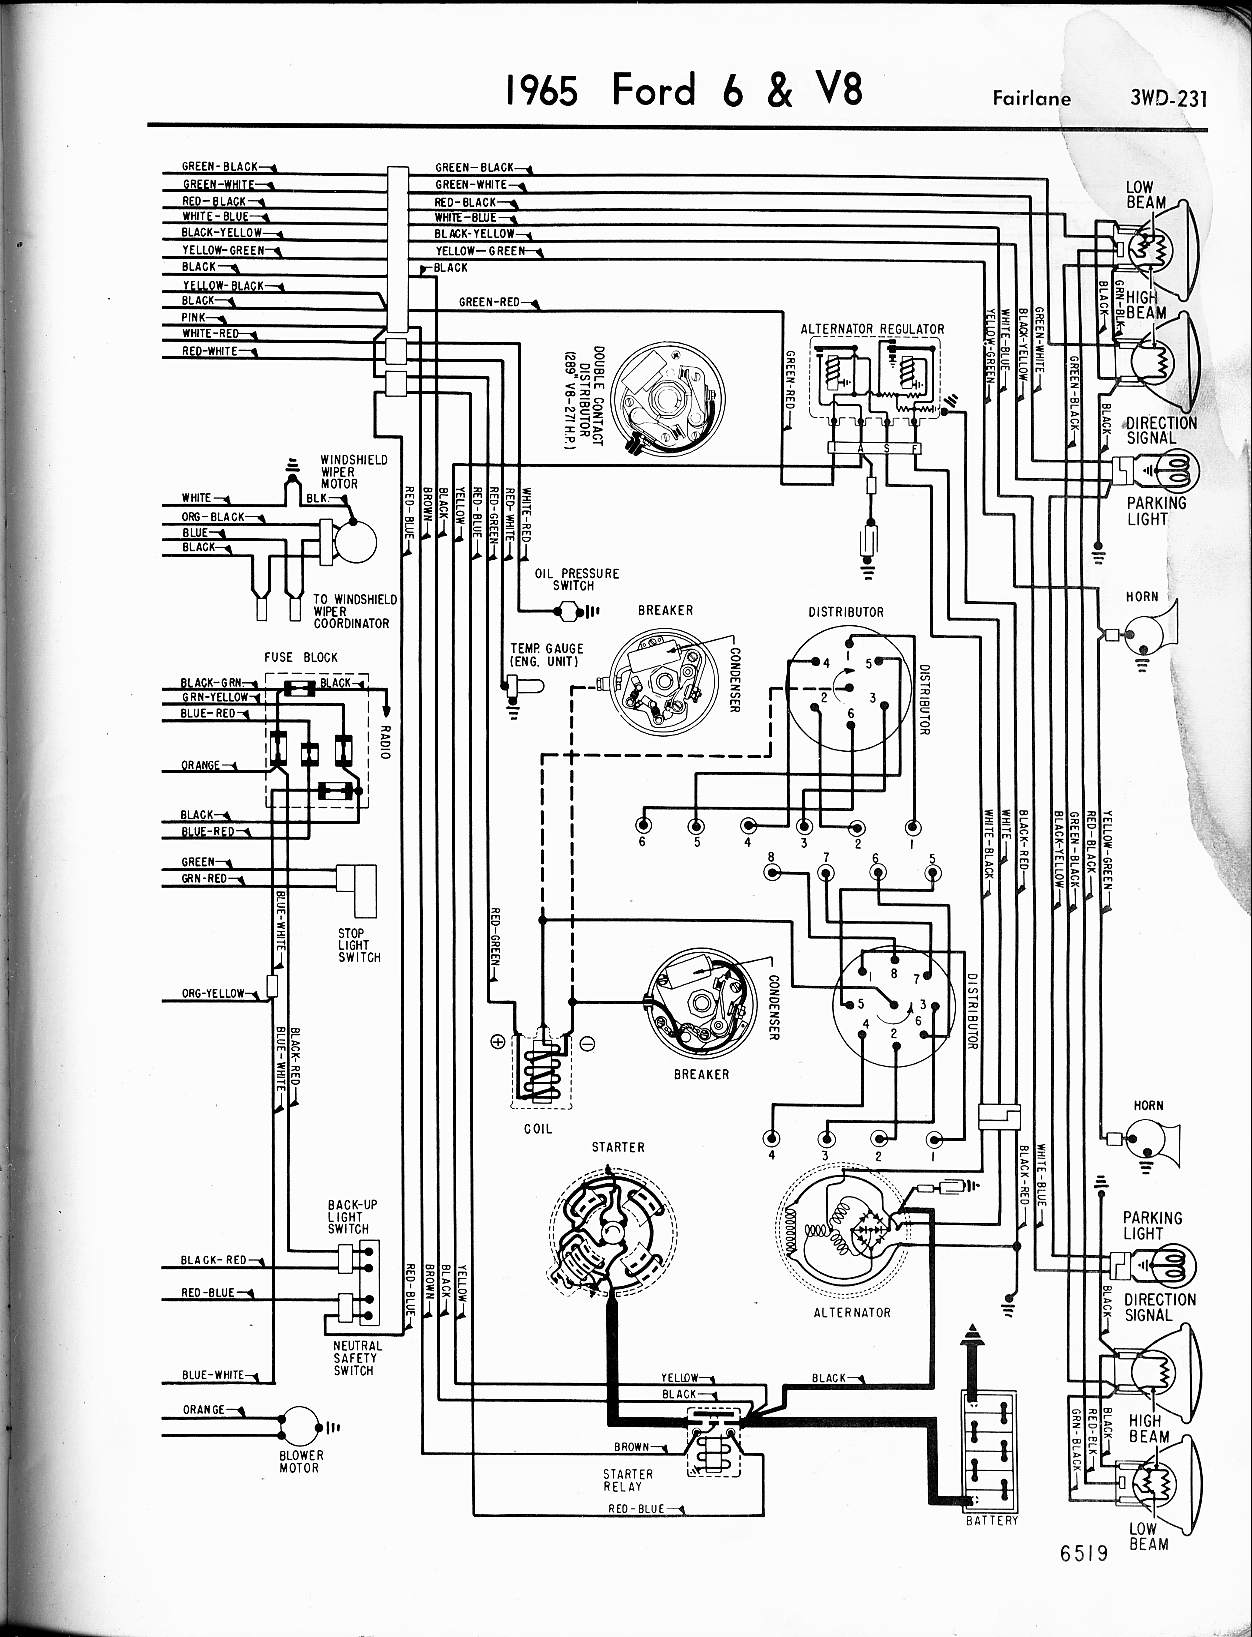 wiring harness for evinrude with 1978 Coil For Ford 4 9 V6 Wiring Diagrams on 58xv8 I M Looking Wiring Diagram 1984 Mercury 115hp likewise Indmar Marine Engine Parts Diagram in addition 1978 Coil For Ford 4 9 V6 Wiring Diagrams besides 650492 1956 30hp Timing Question also 90 Hp Yamaha Outboard Trim Wiring Diagram.